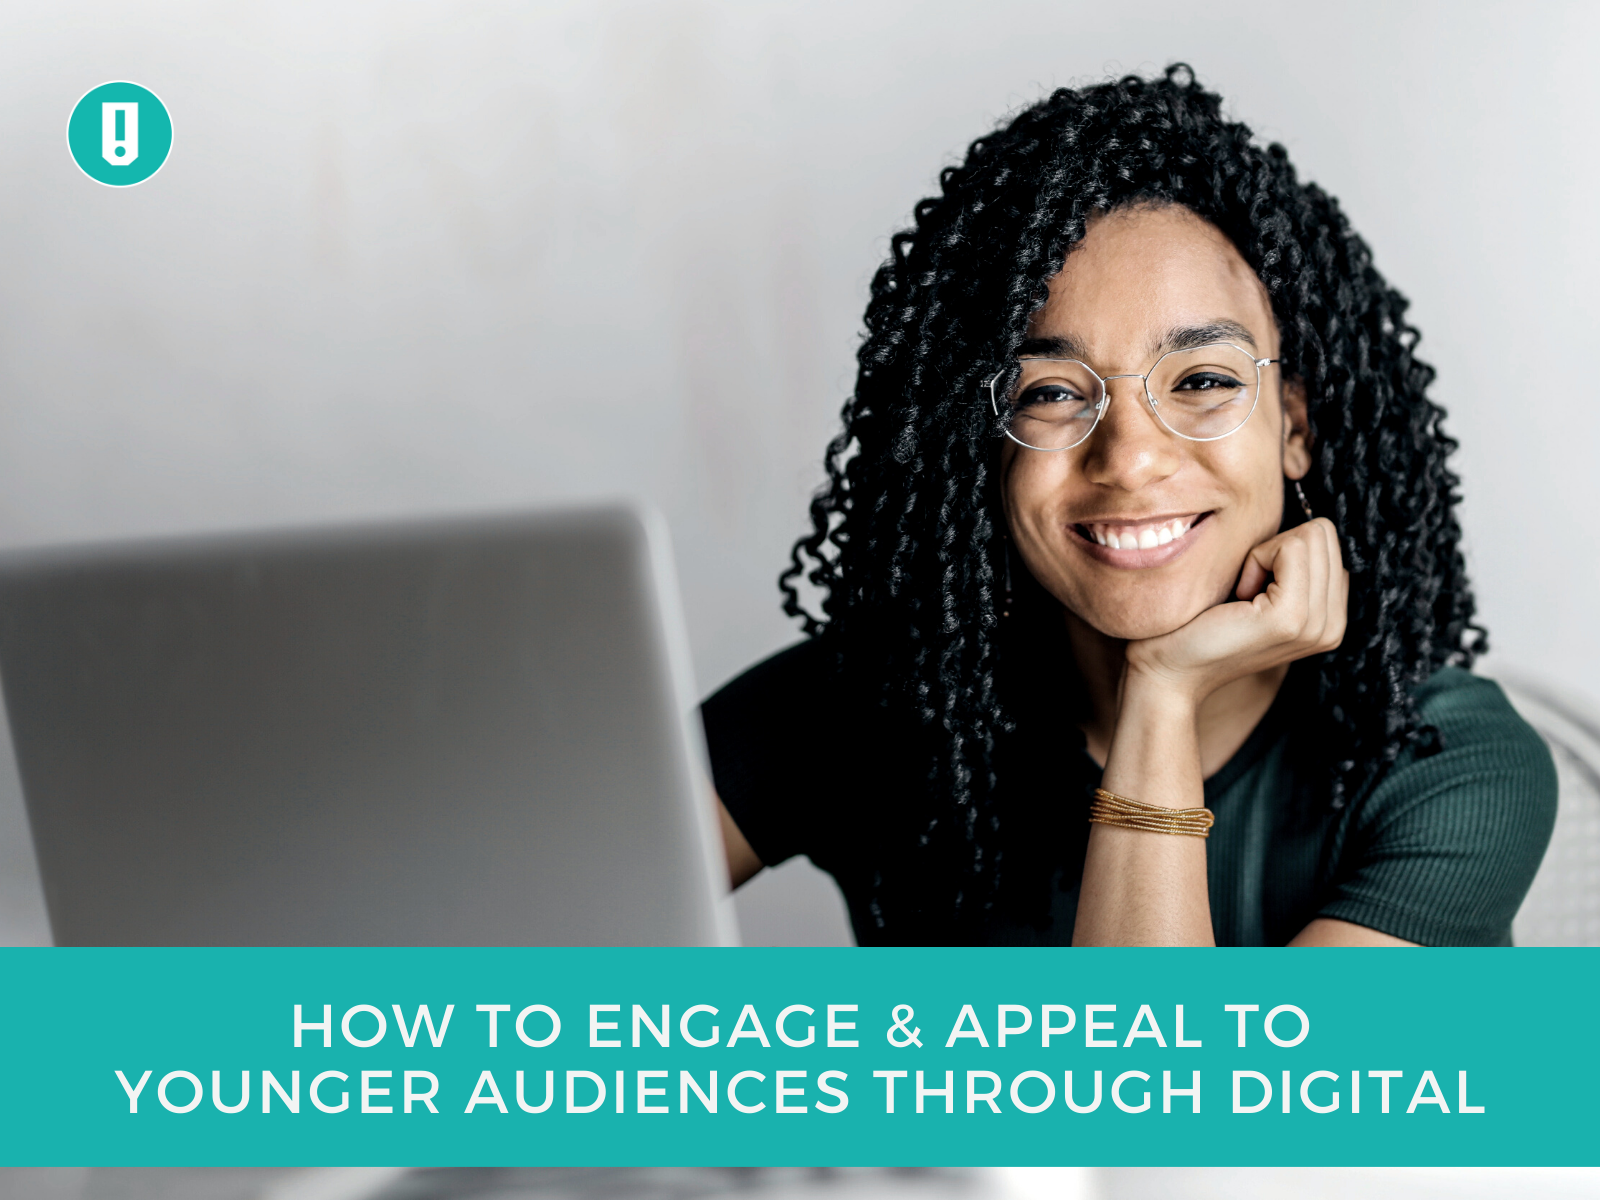 How To Engage & Appeal To Younger Audiences Through Digital